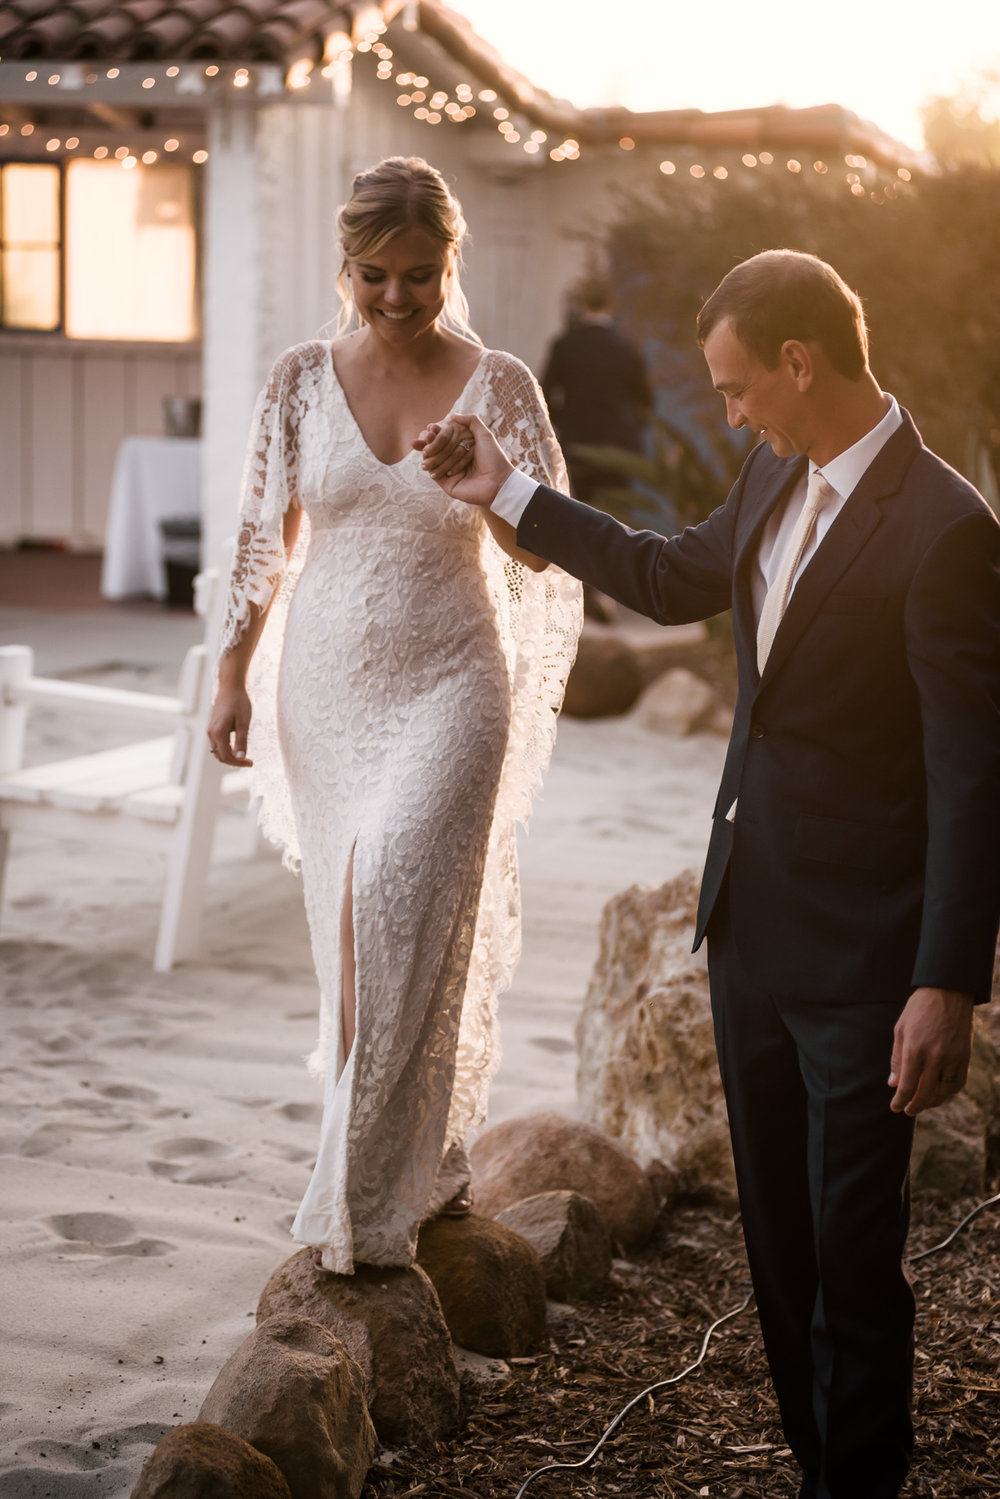 groom helps bride walk along the stones captured by photographer during romantic wedding at the historic Leo Carrillo Ranch in Carlsbad California